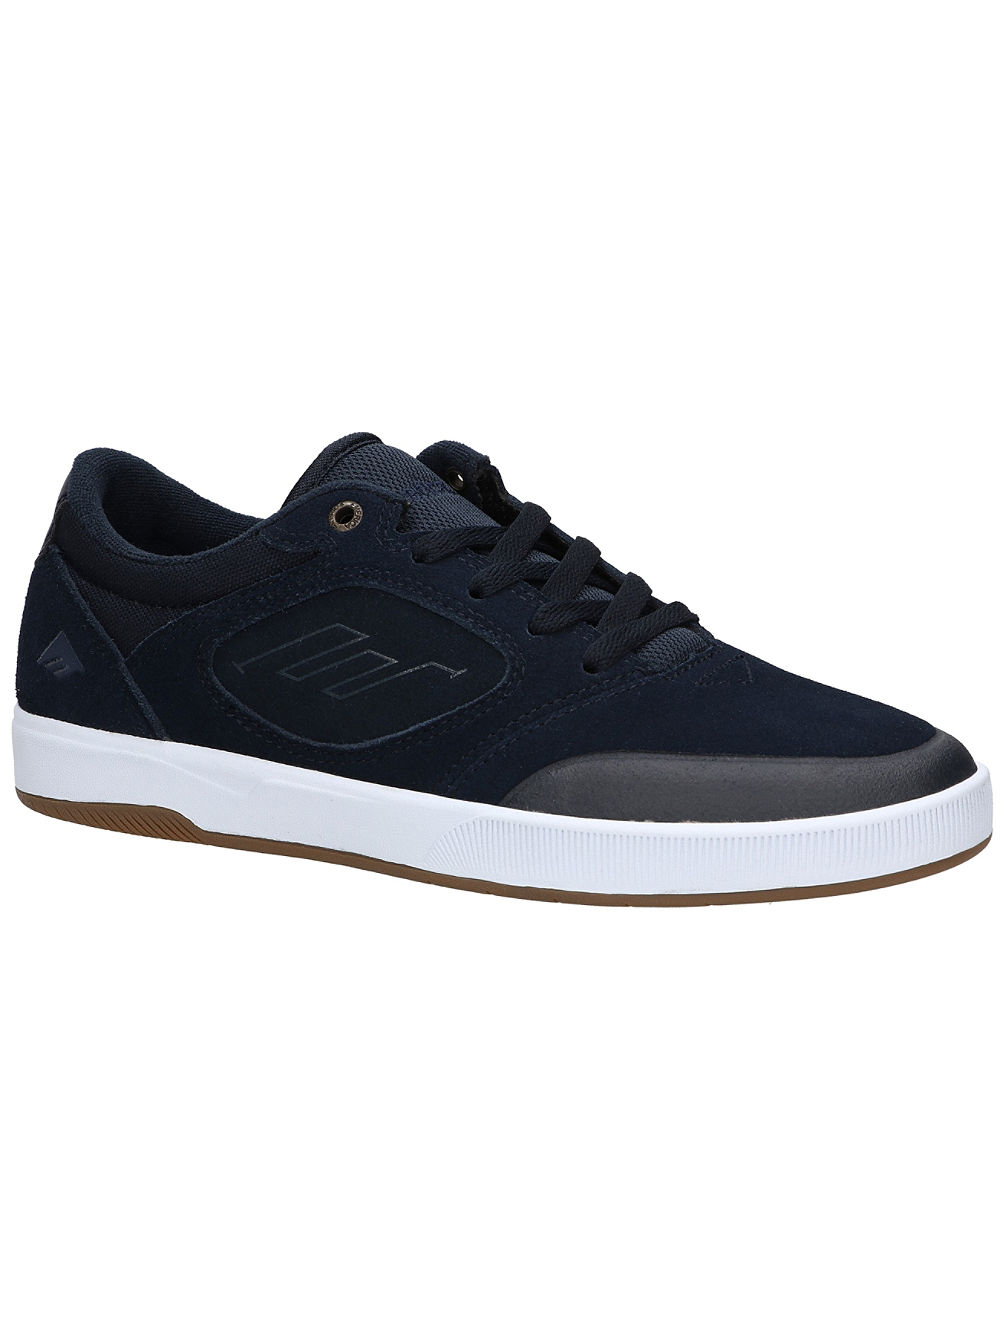 Dissent Skate Shoes